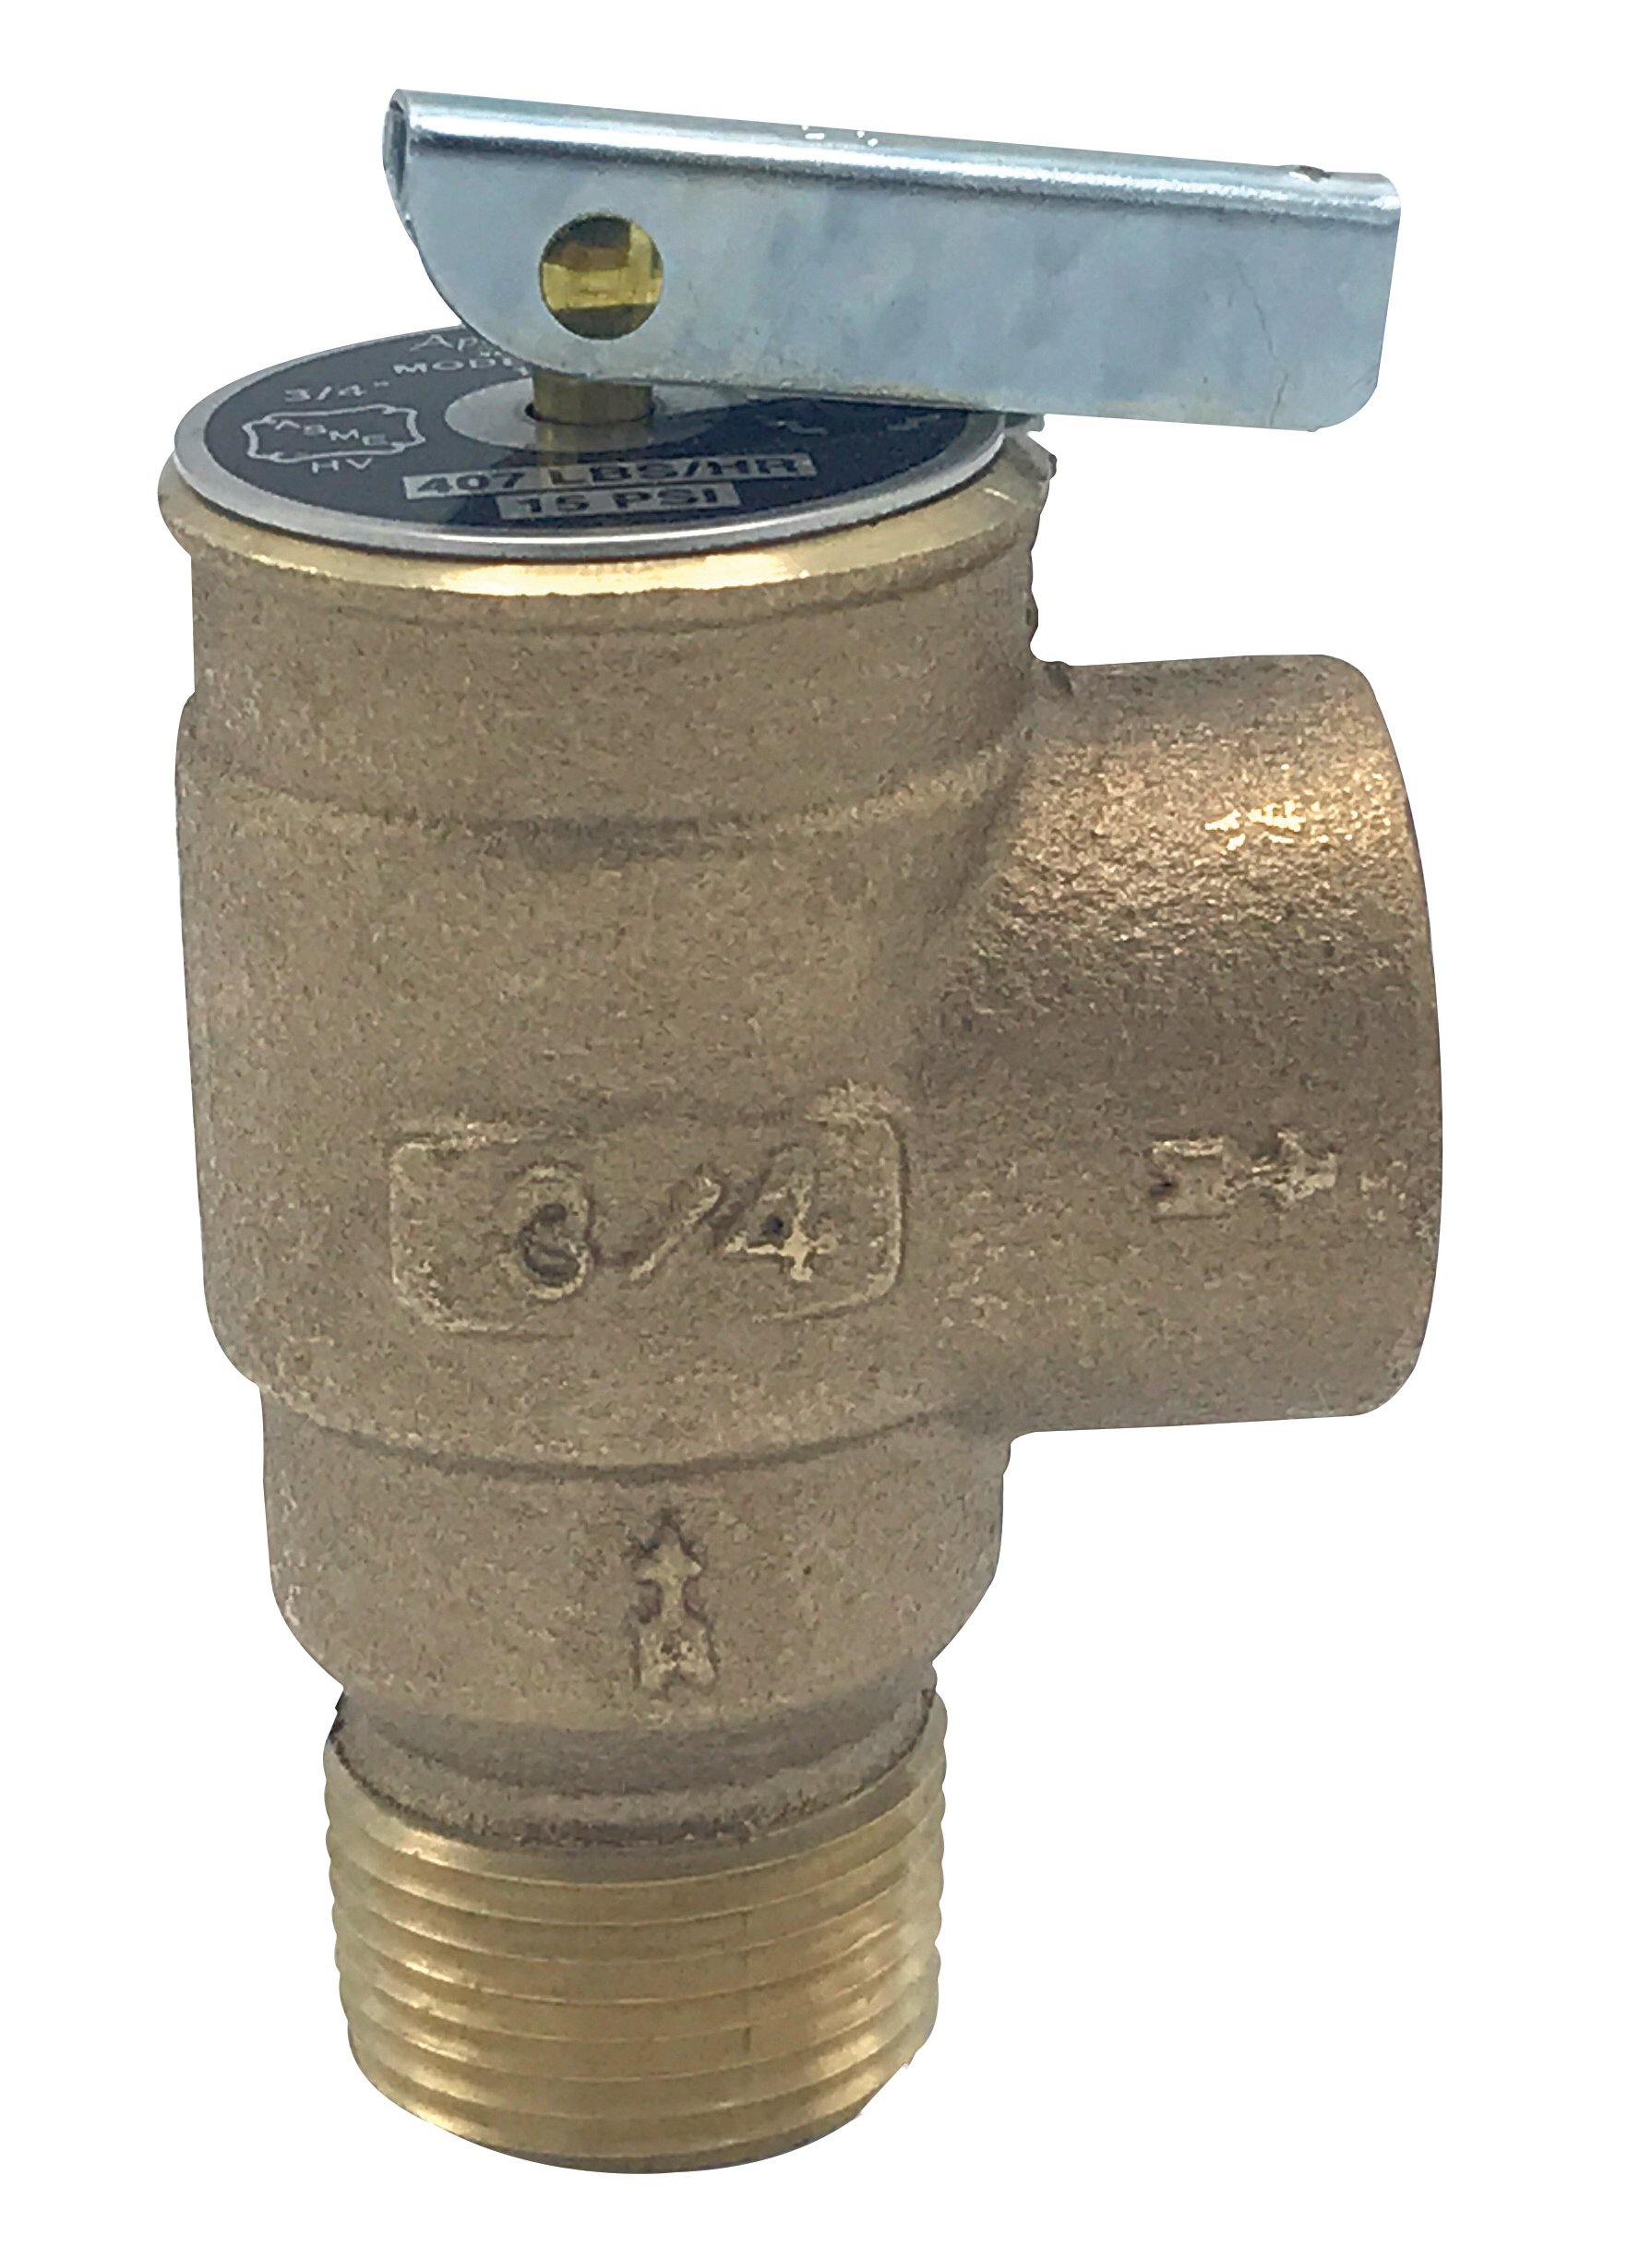 "Walrich 1727001 15Psi 3/4"" Standard Side Outlet Pop Boiler Relief Valve"